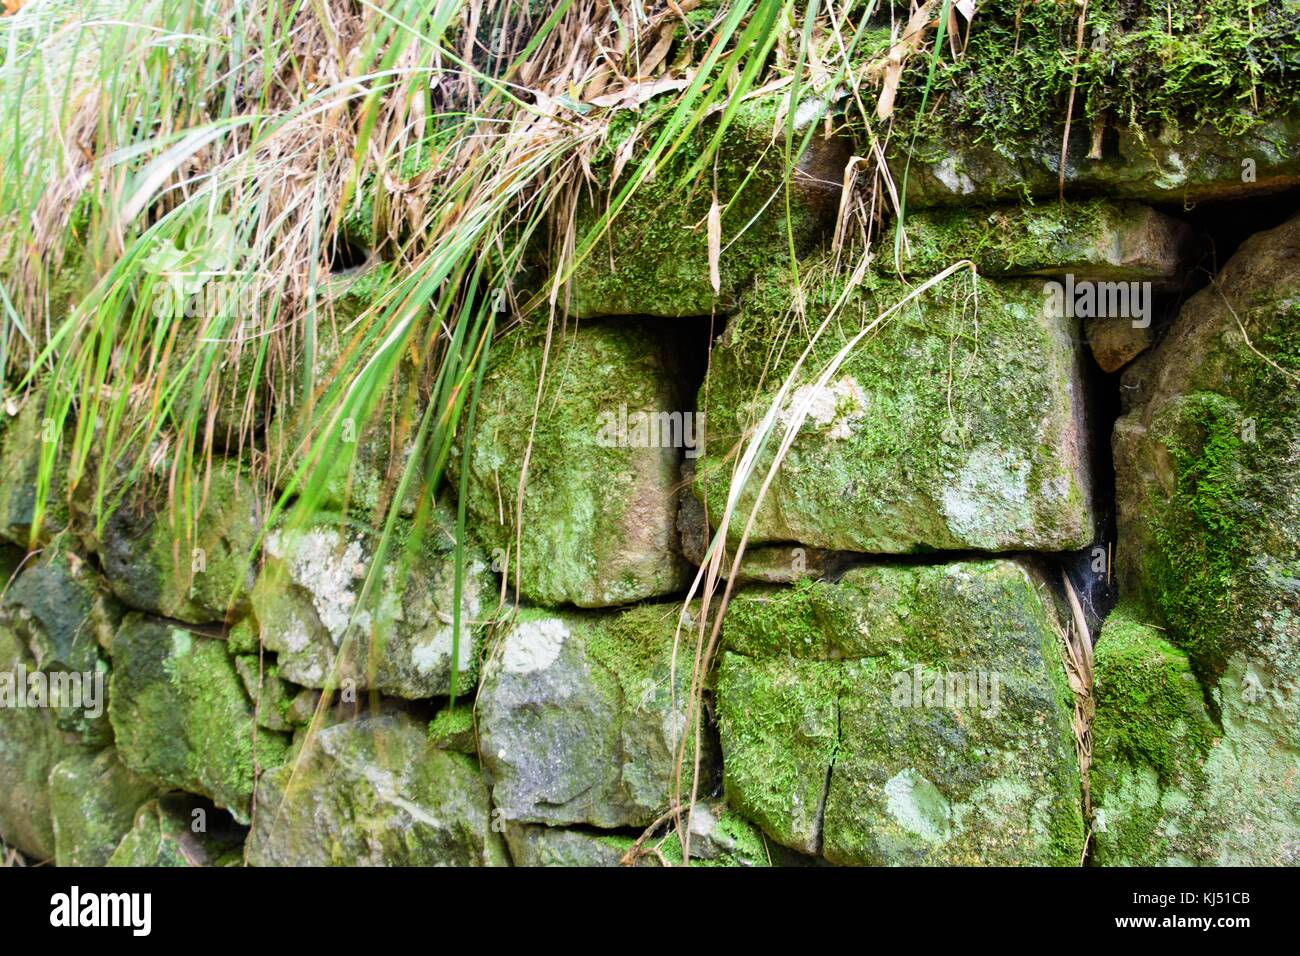 Stone wall with green moss growing on it at Moganshan in China - Stock Image